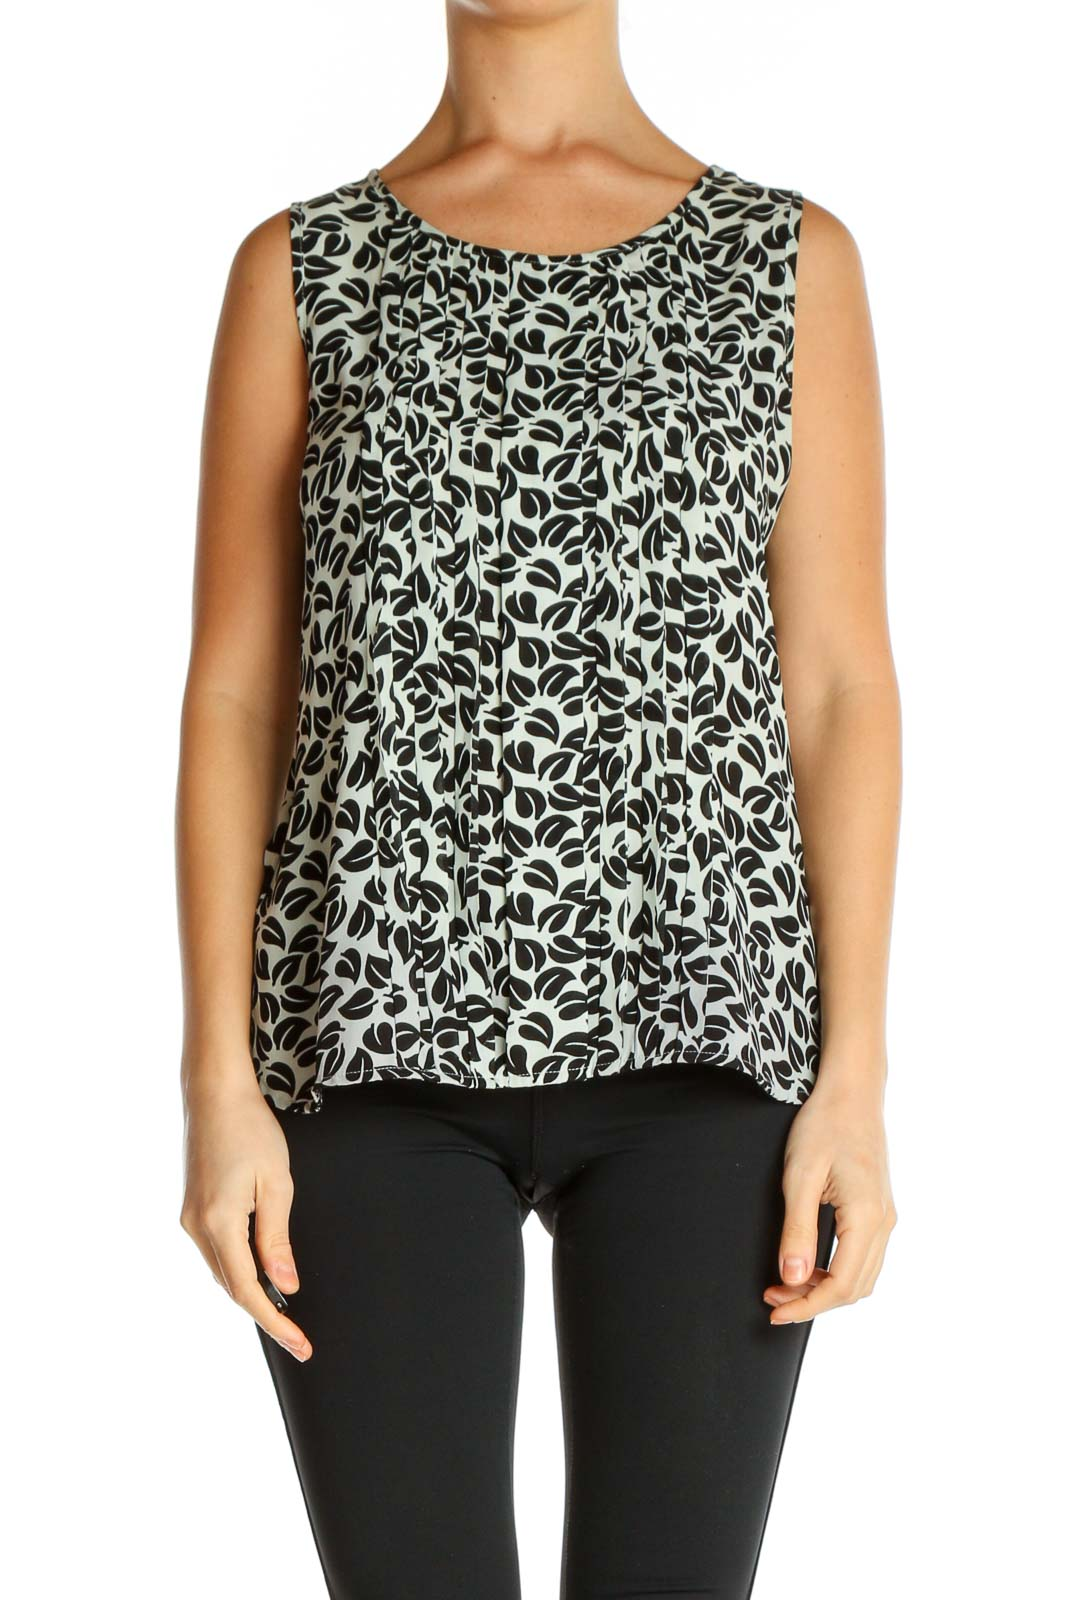 Gray Animal Print All Day Wear Blouse Front